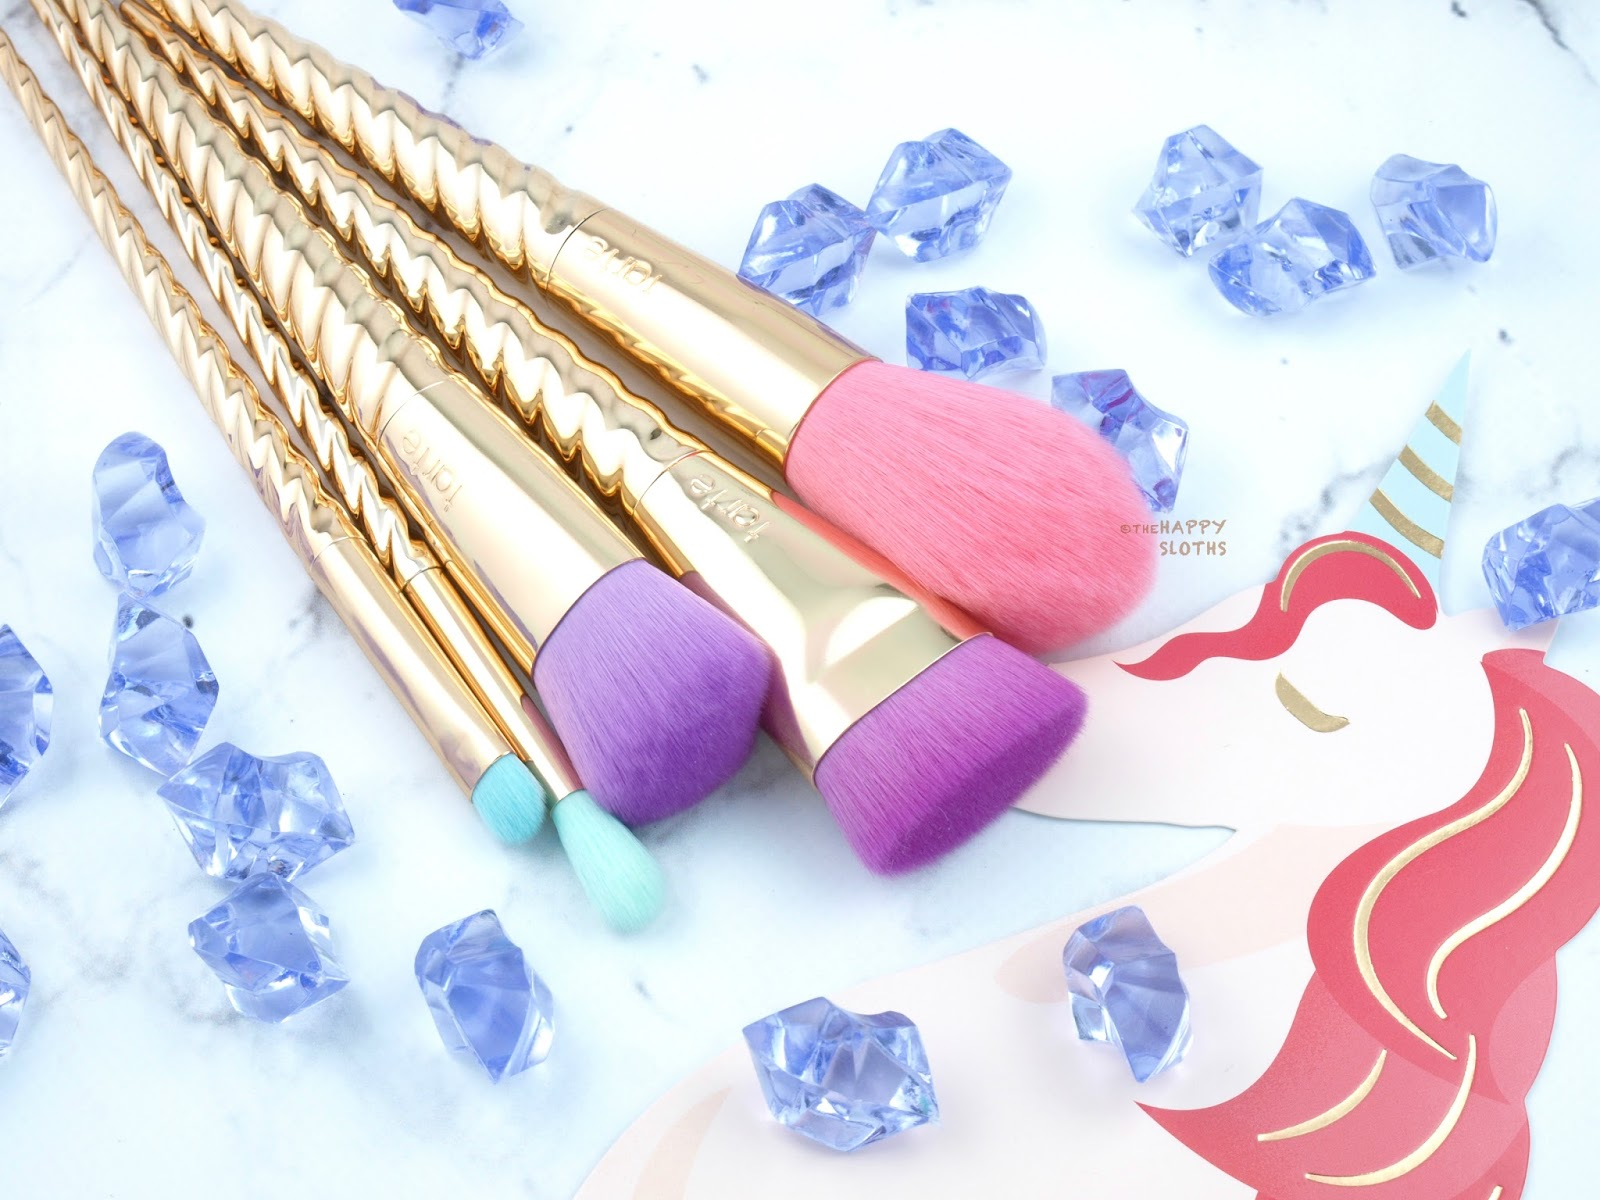 Tarte Summer 2017 Magic Wands Brush Set: Review and Swatches